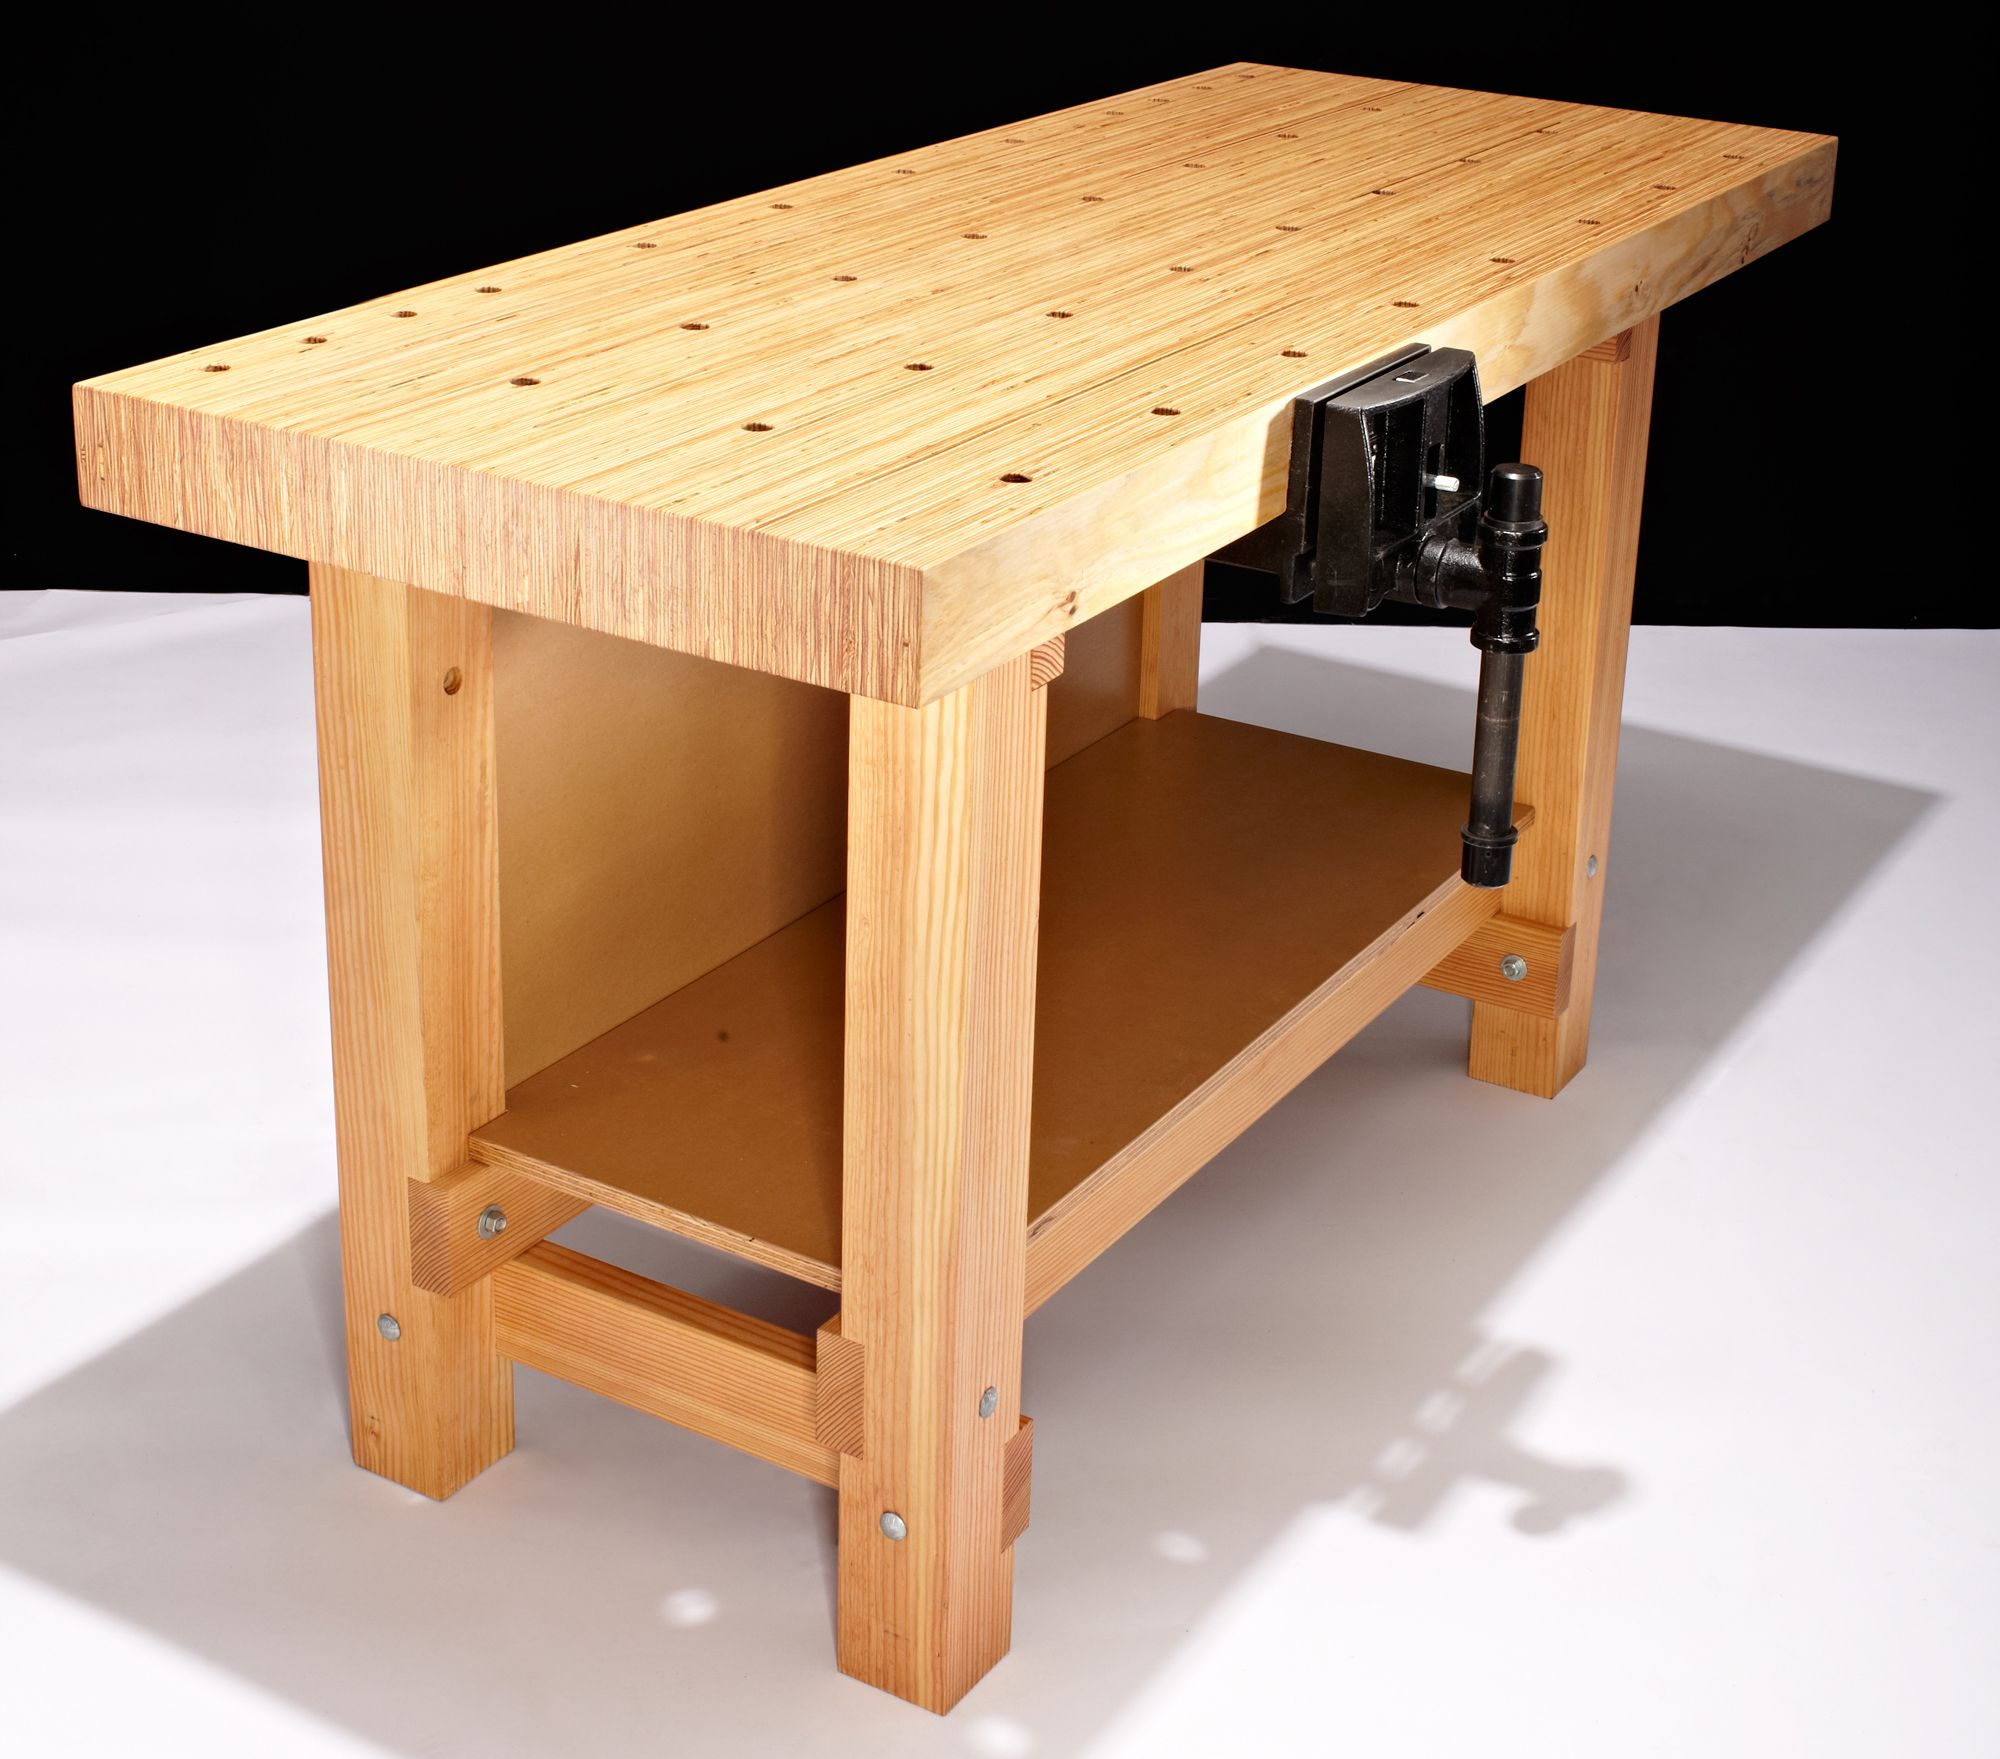 Diy Workbench With Wheels How To Build This Diy Workbench